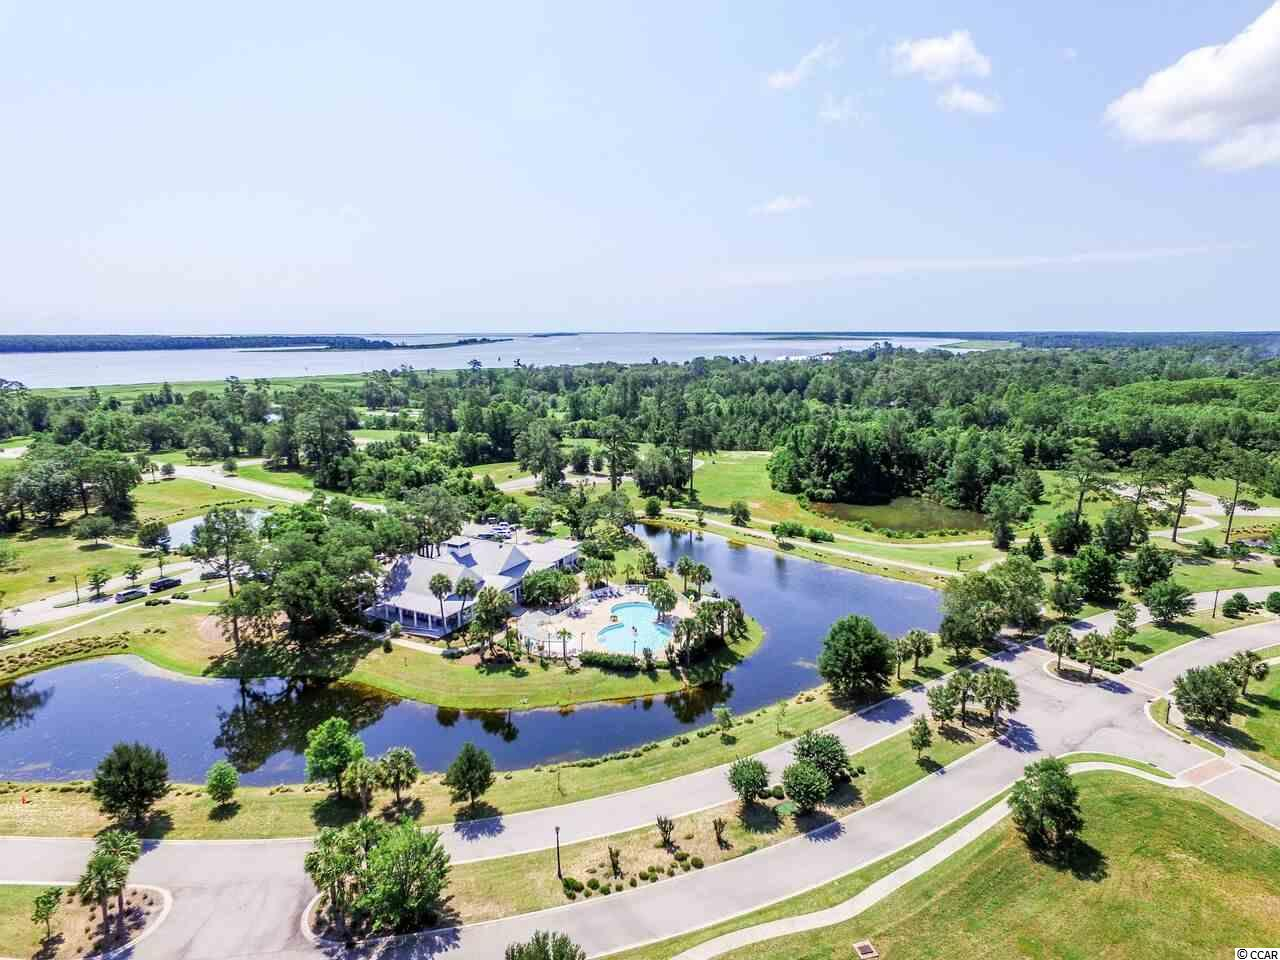 Located in South Island Plantation, a gated community located along Winyah Bay and the Intracoastal Waterway, near Historic Georgetown, SC. Community amenities include a pool, kiddie pool and hot tub. There is also a 5000 sq ft club house with an equipped fitness center, a bar and a full kitchen. Walking trails wind throughout the community with gazebos for periodic resting. A fishing/crabbin' gazebo is now complete. A secured RV/ Boat storage area is available for property owners. Beautiful ponds for fishing and huge Oak Trees make this one of the premier communities in the Georgetown area. Natural gas is also available in South Island Plantation. Build your dream home today.... (Seller is a South Carolina Real Estate Licensee.)